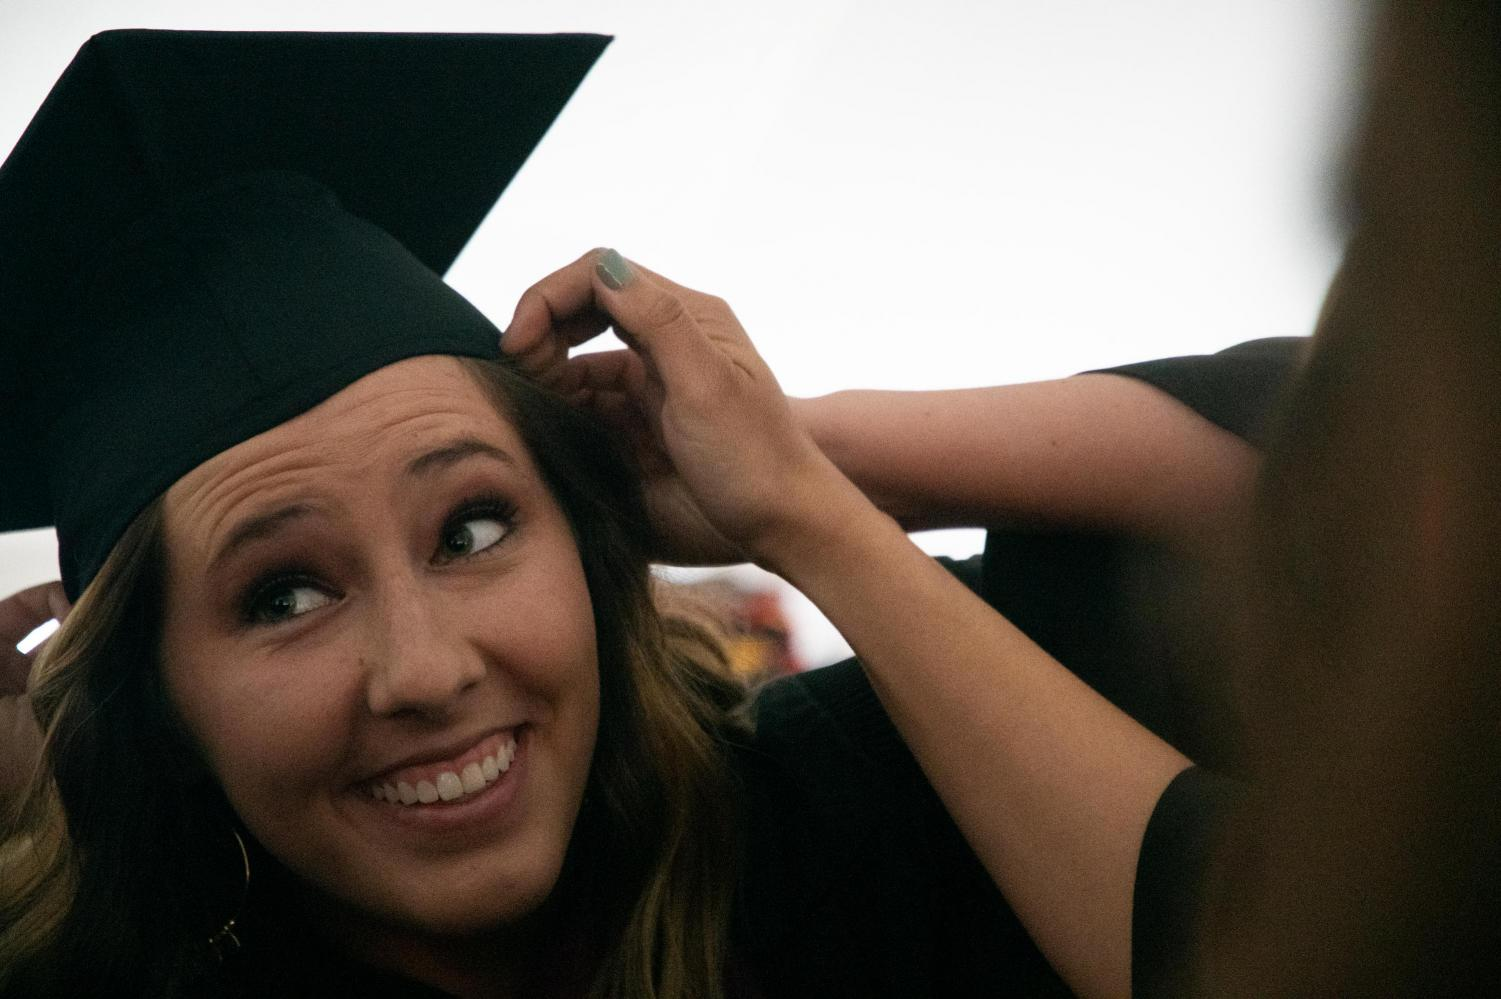 Bailey+Nippe%2C+a+senior+graduating+with+a+degree+in++dental+hygiene+gets+help+from+friends+to+adjust+her+hat+on+Saturday%2C+May+11%2C+2019+during+the+2019+commencement+inside+the+SIU+Arena.+